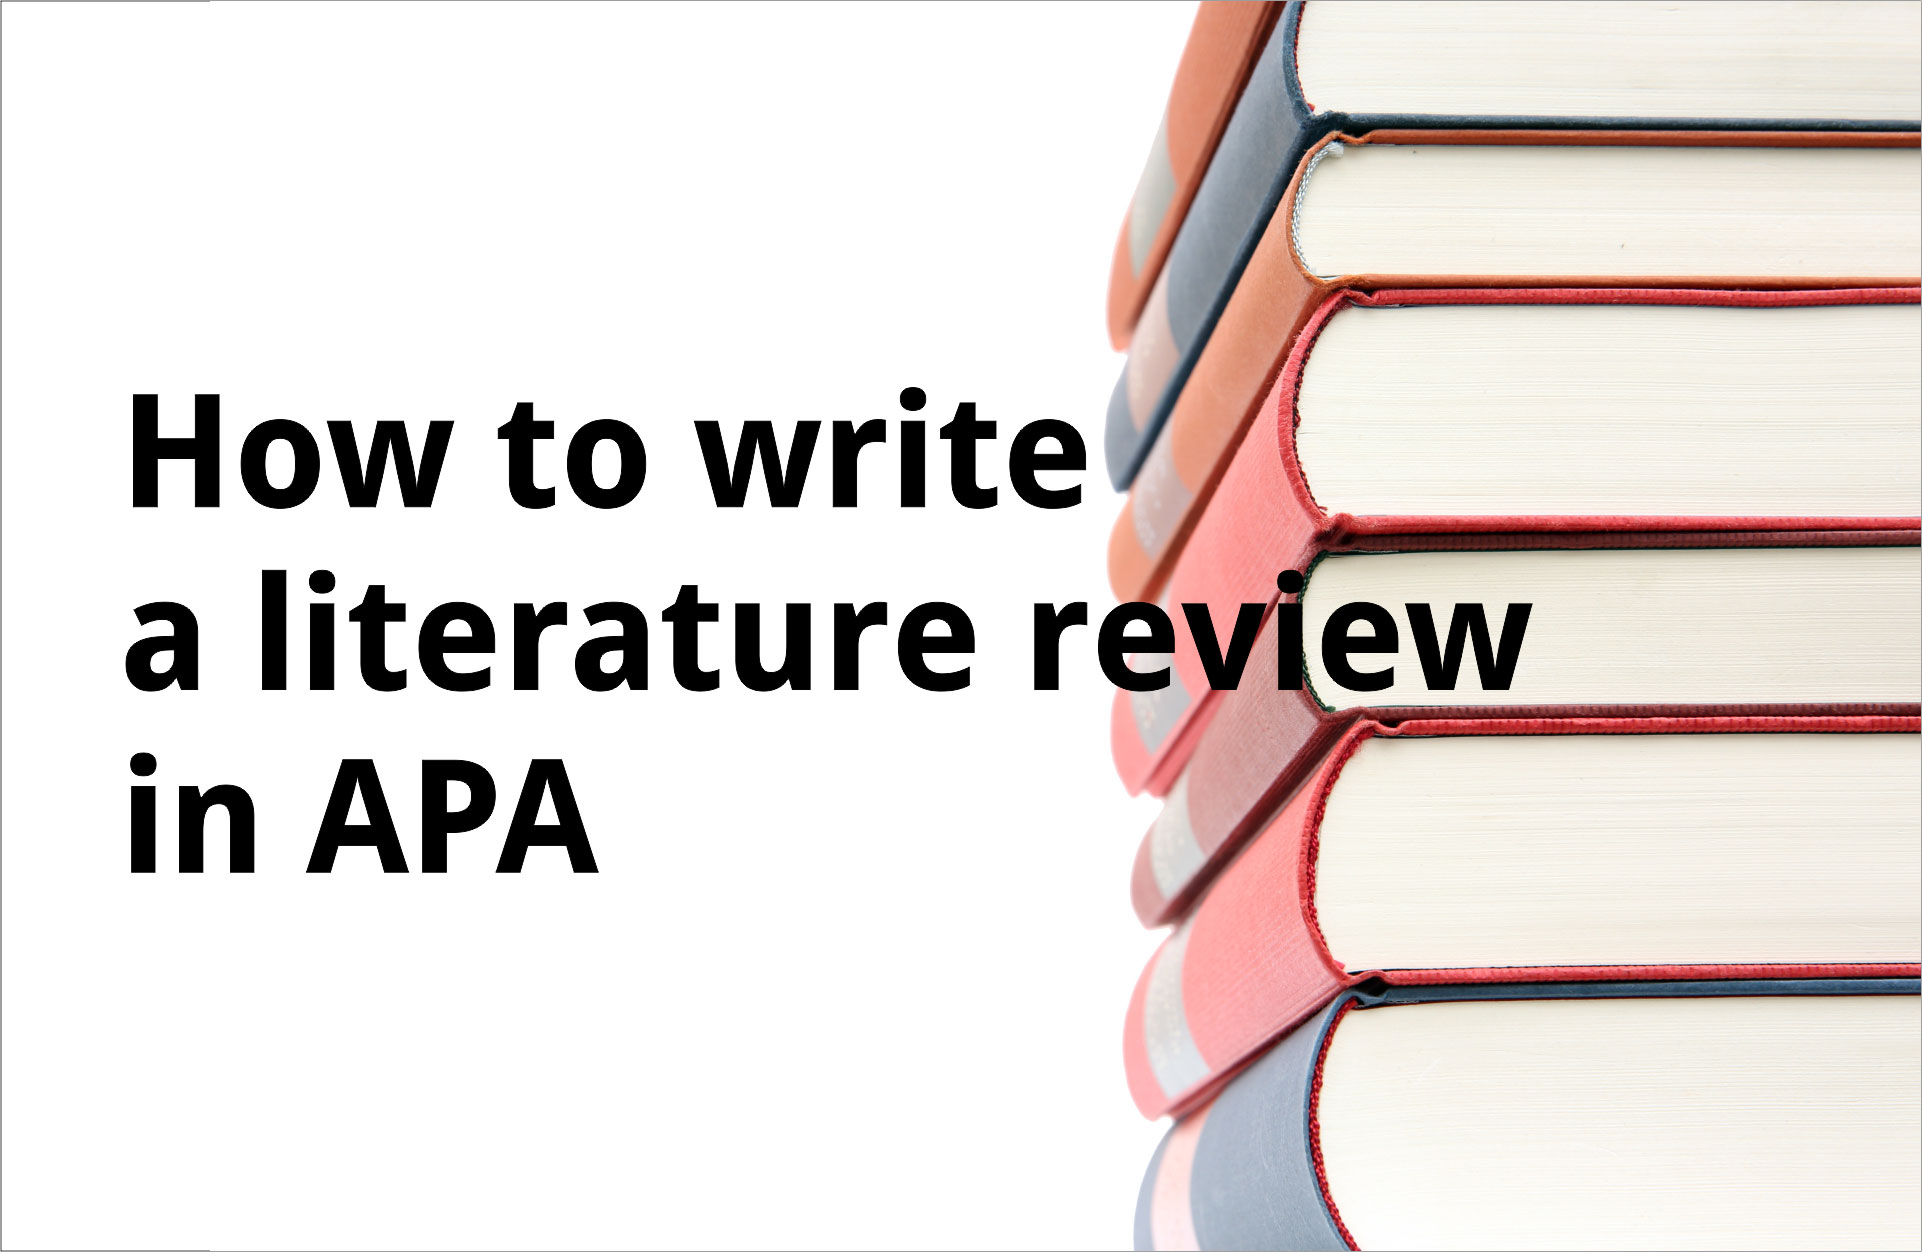 Pay for written literature review